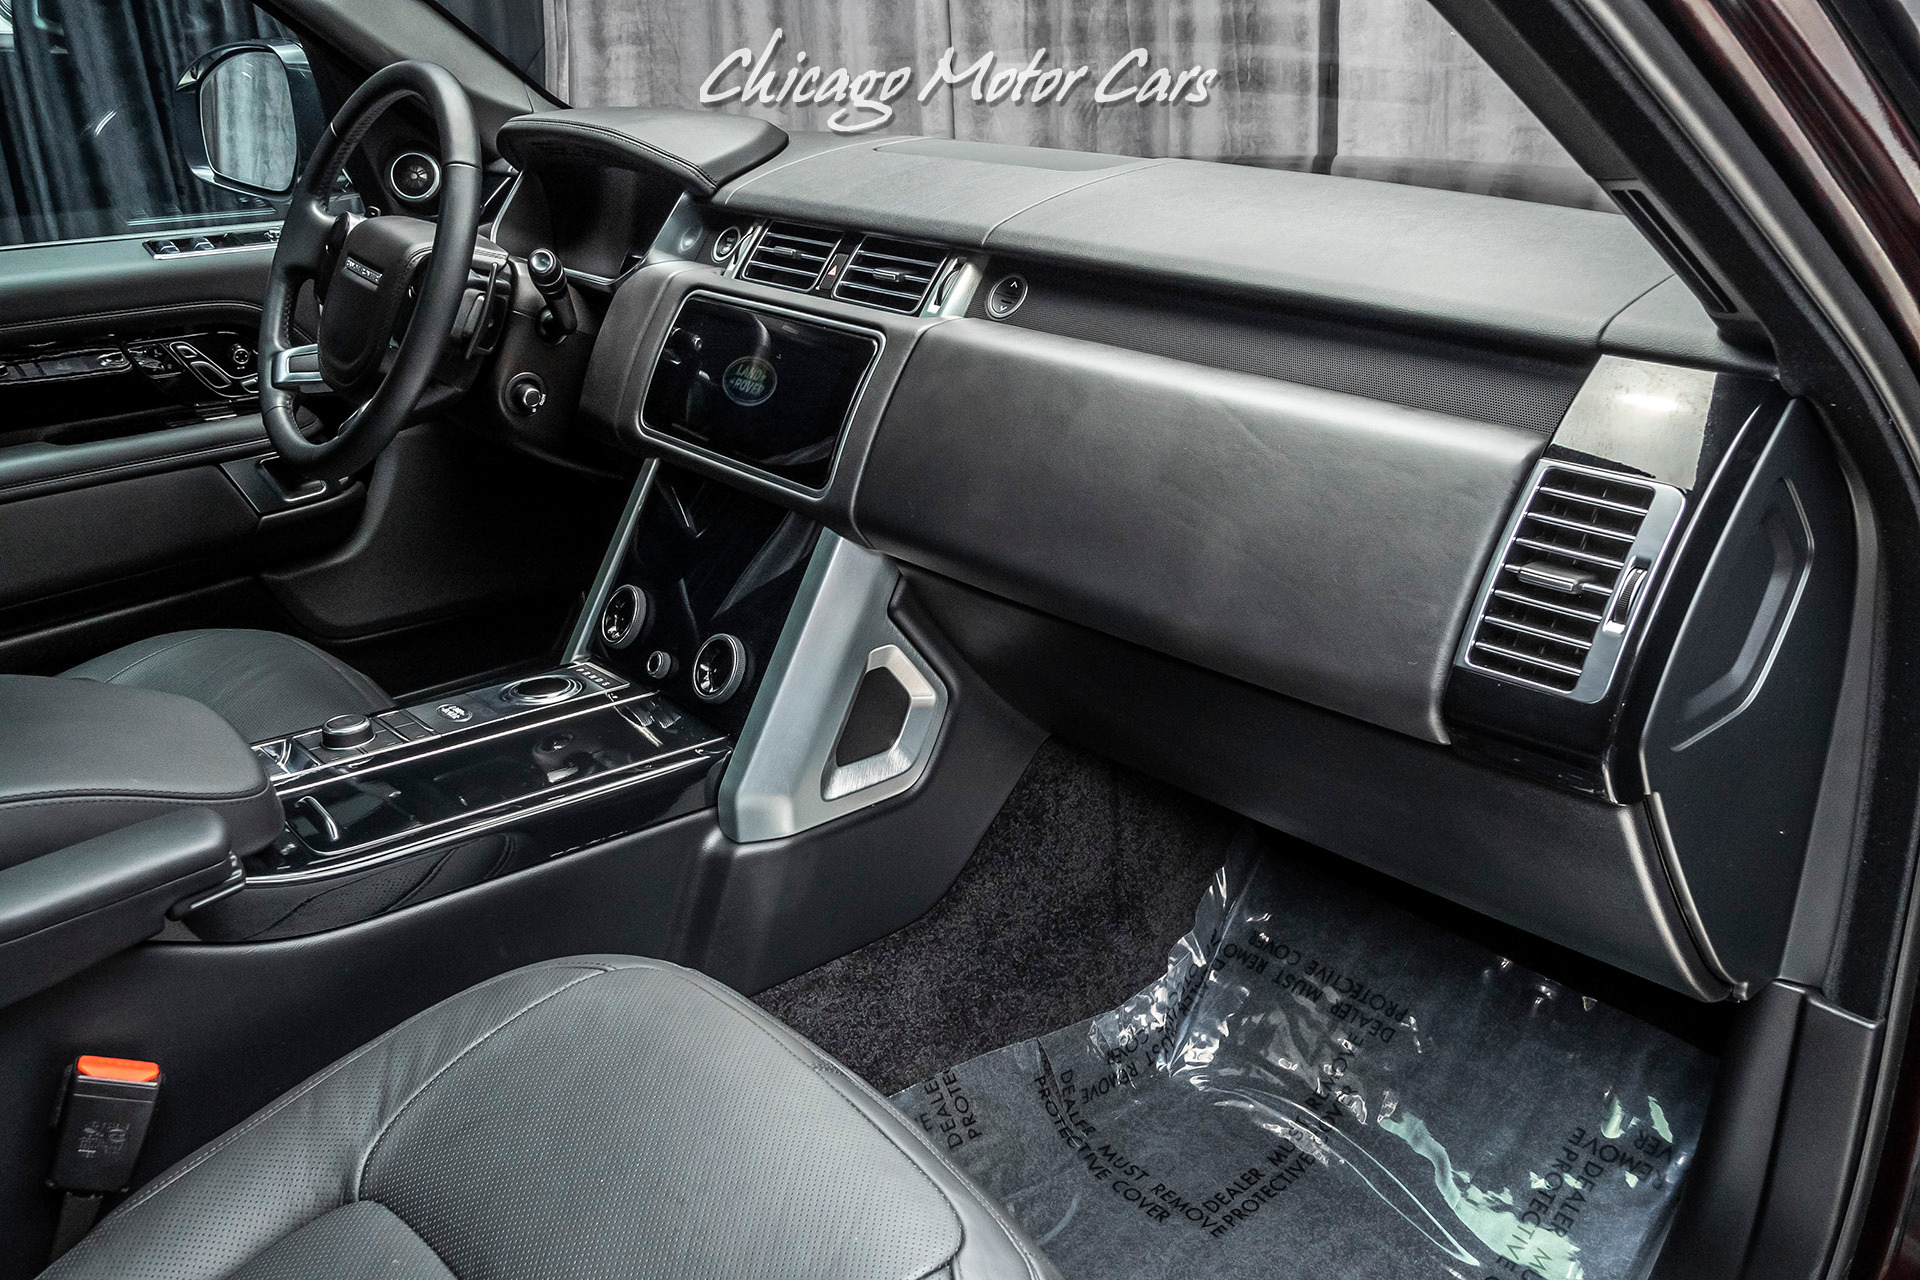 Used-2019-Land-Rover-Range-Rover-Supercharged-Only-8500-Miles-SUV-Loaded-RARE-Color-Combo